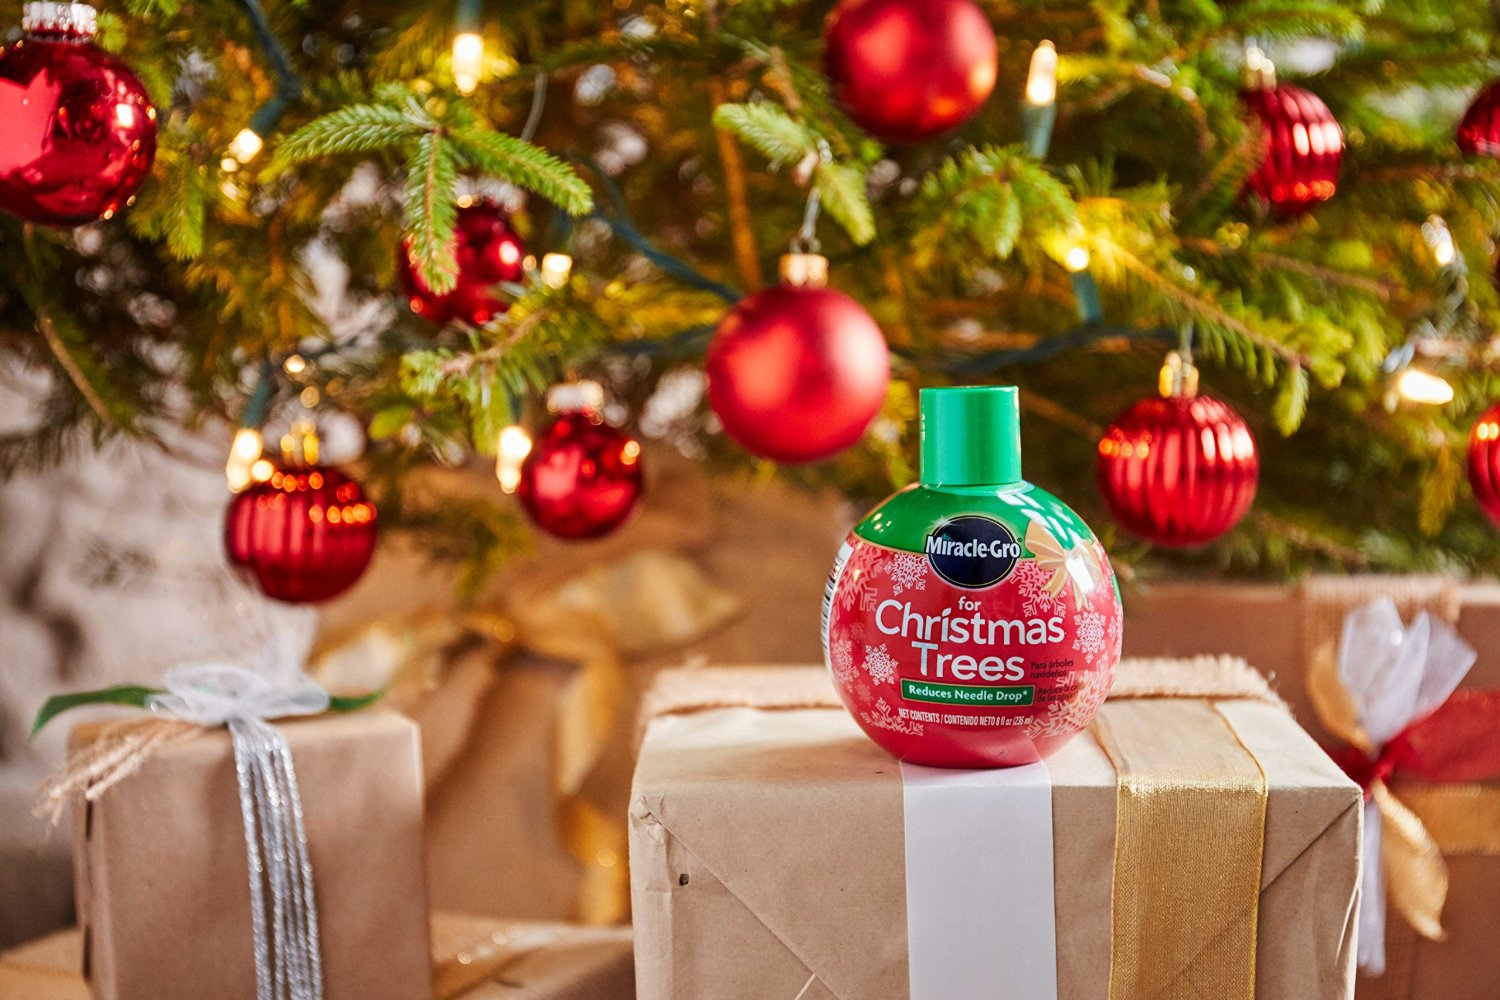 Miracle Gro For Christmas Trees Plant Food Miracle Gro